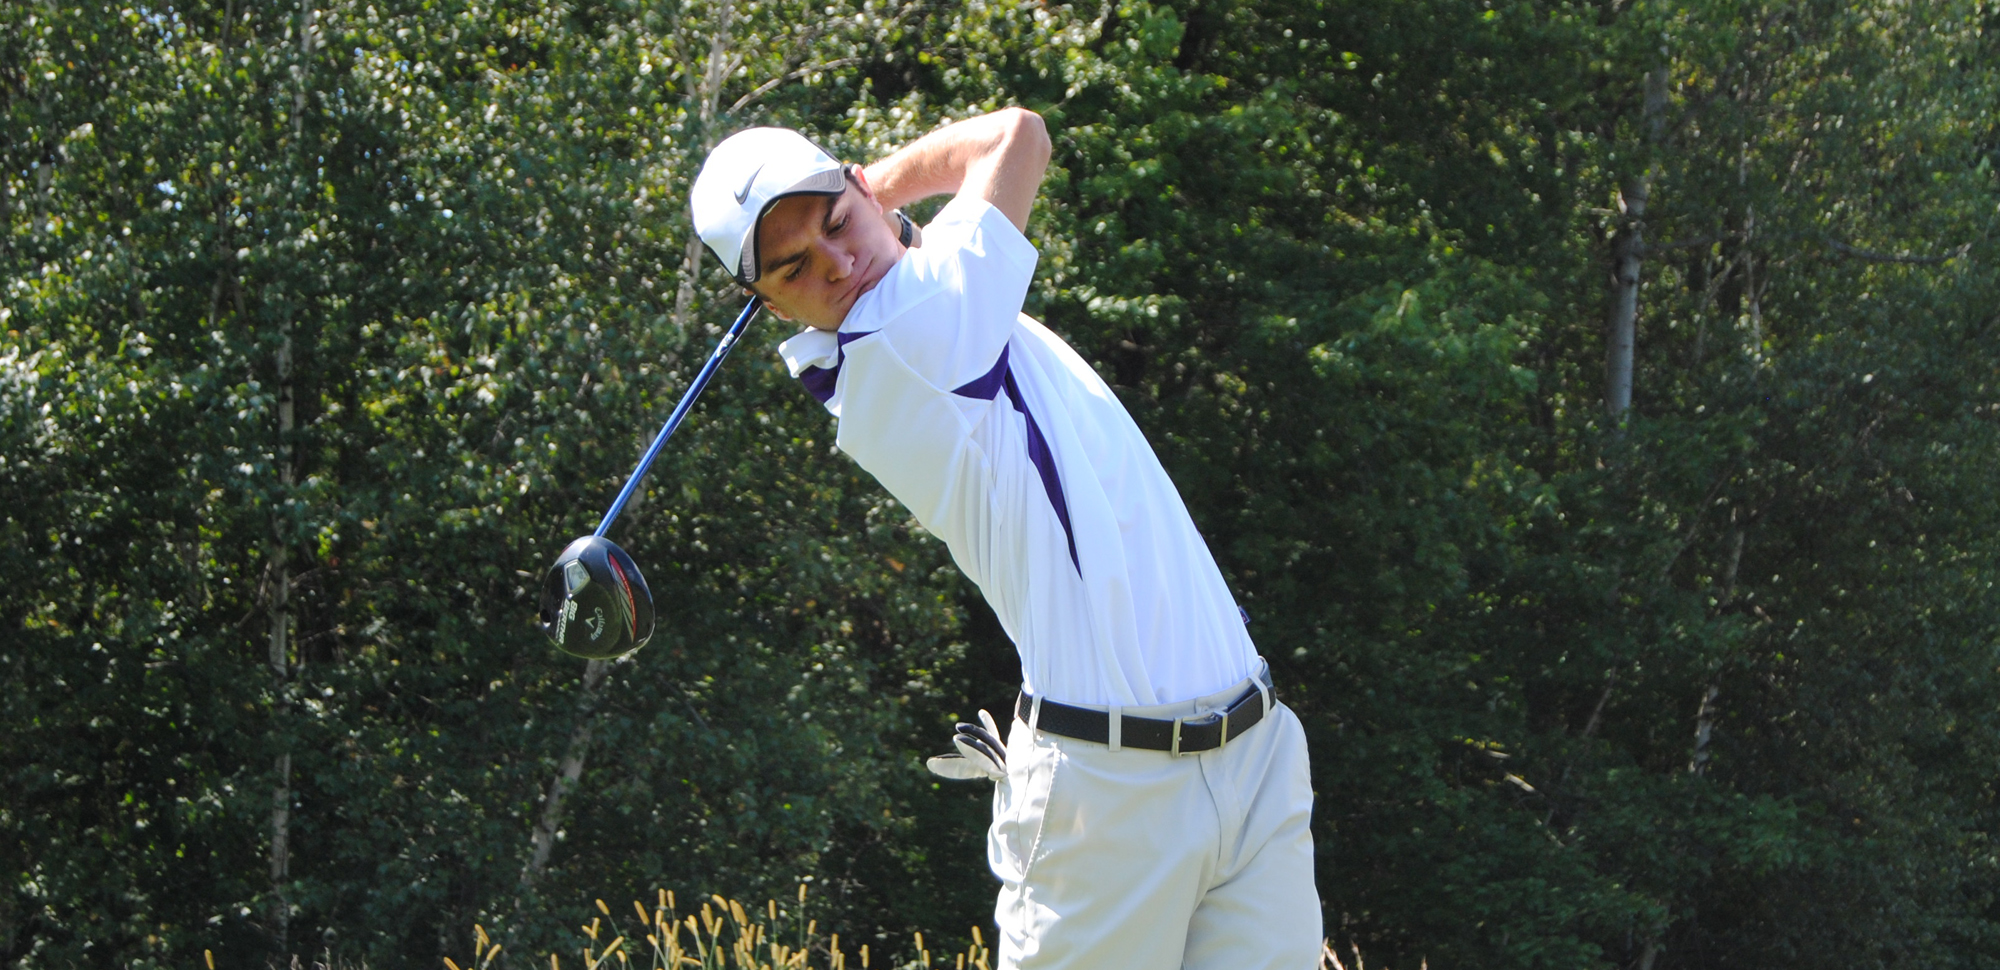 Senior Tyler Huggins shot 77 in the third round of the Empire 8 Conference Championship on Friday, tied for the second-lowest score of the day.